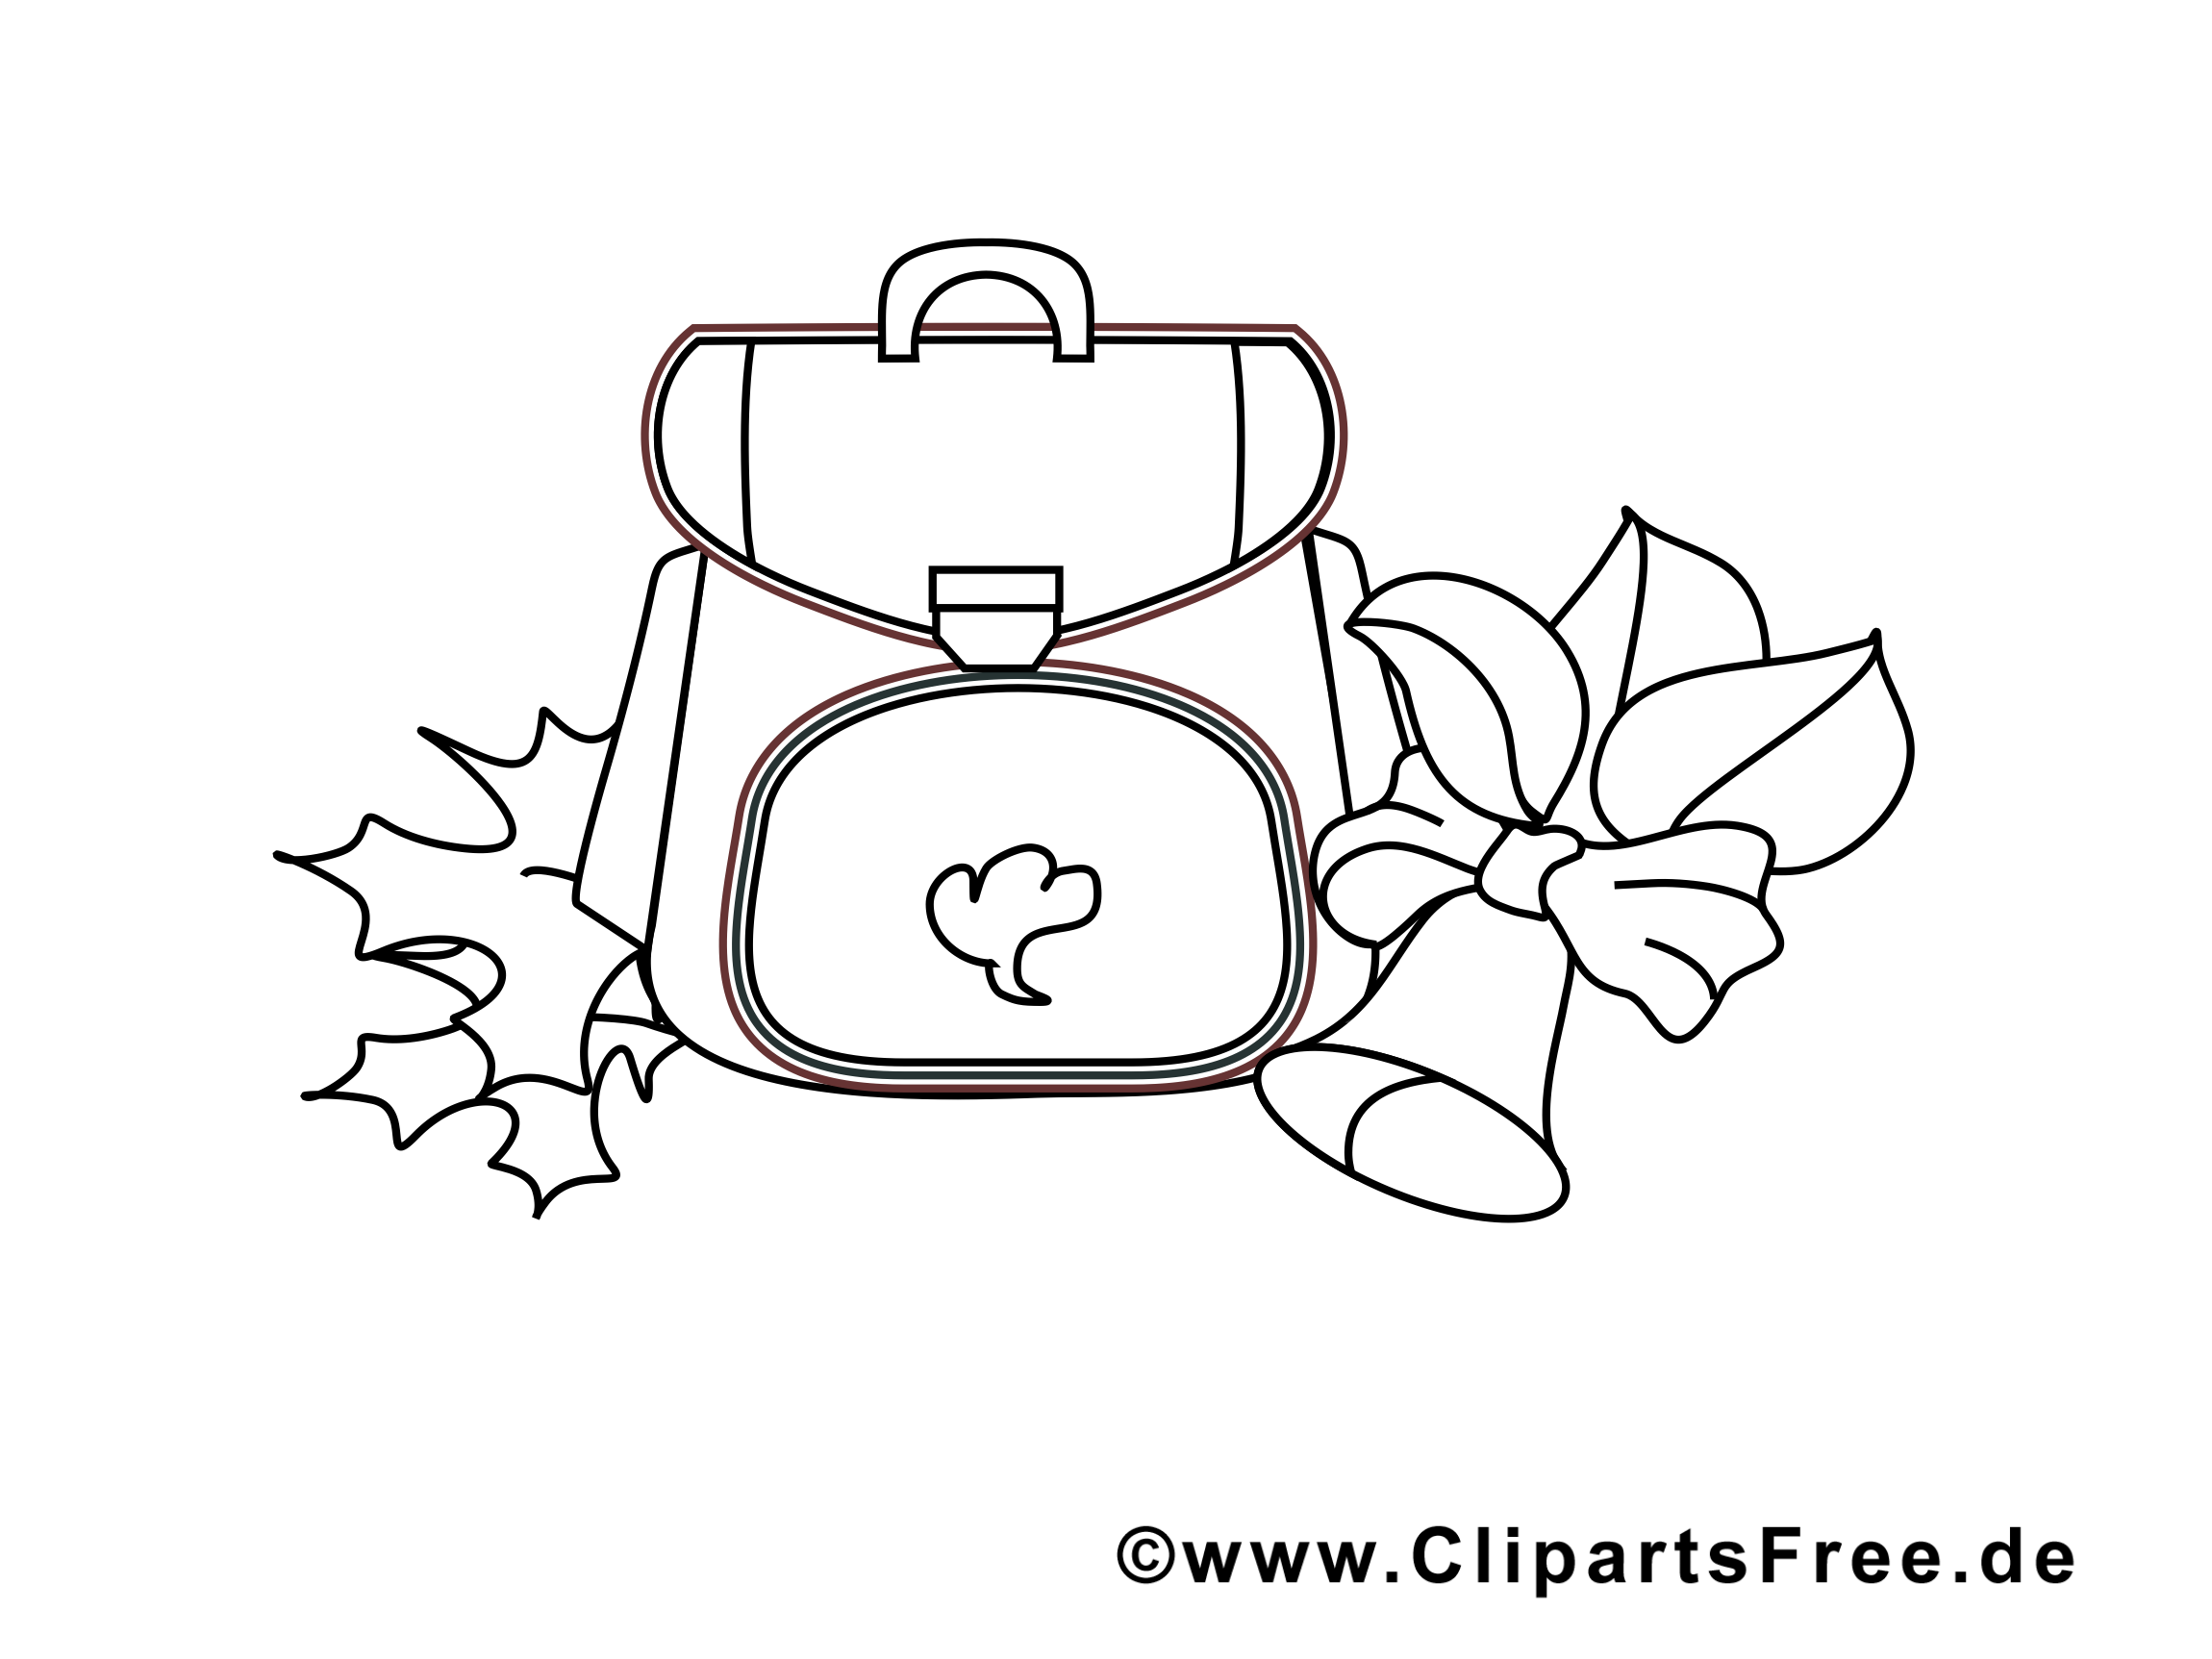 Cartable image cole images colorier l 39 cole - Coloriage cartable maternelle ...